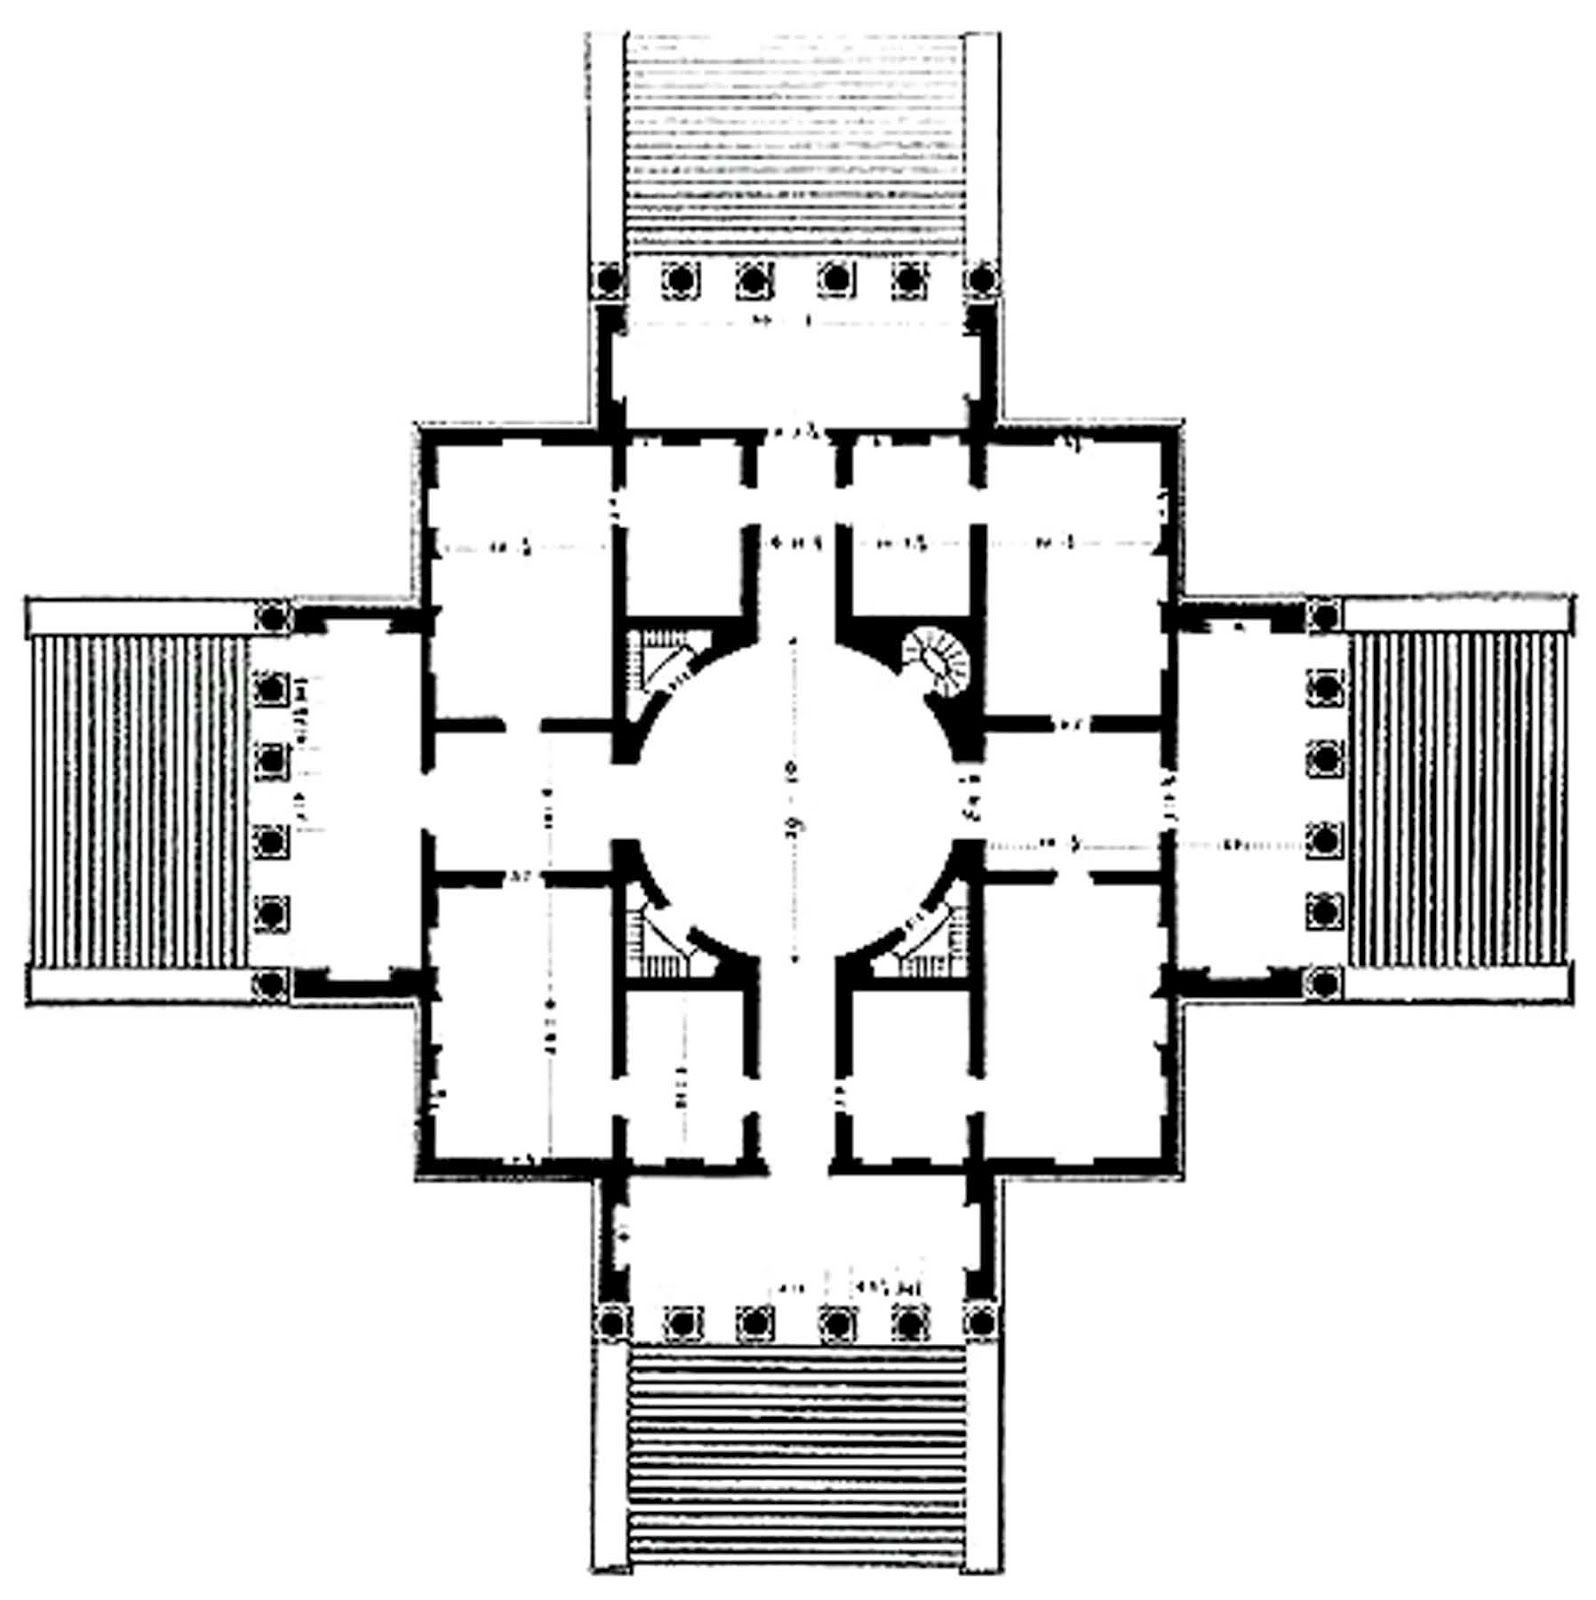 palladio  villa rotunda  1778  the plan as a centralised